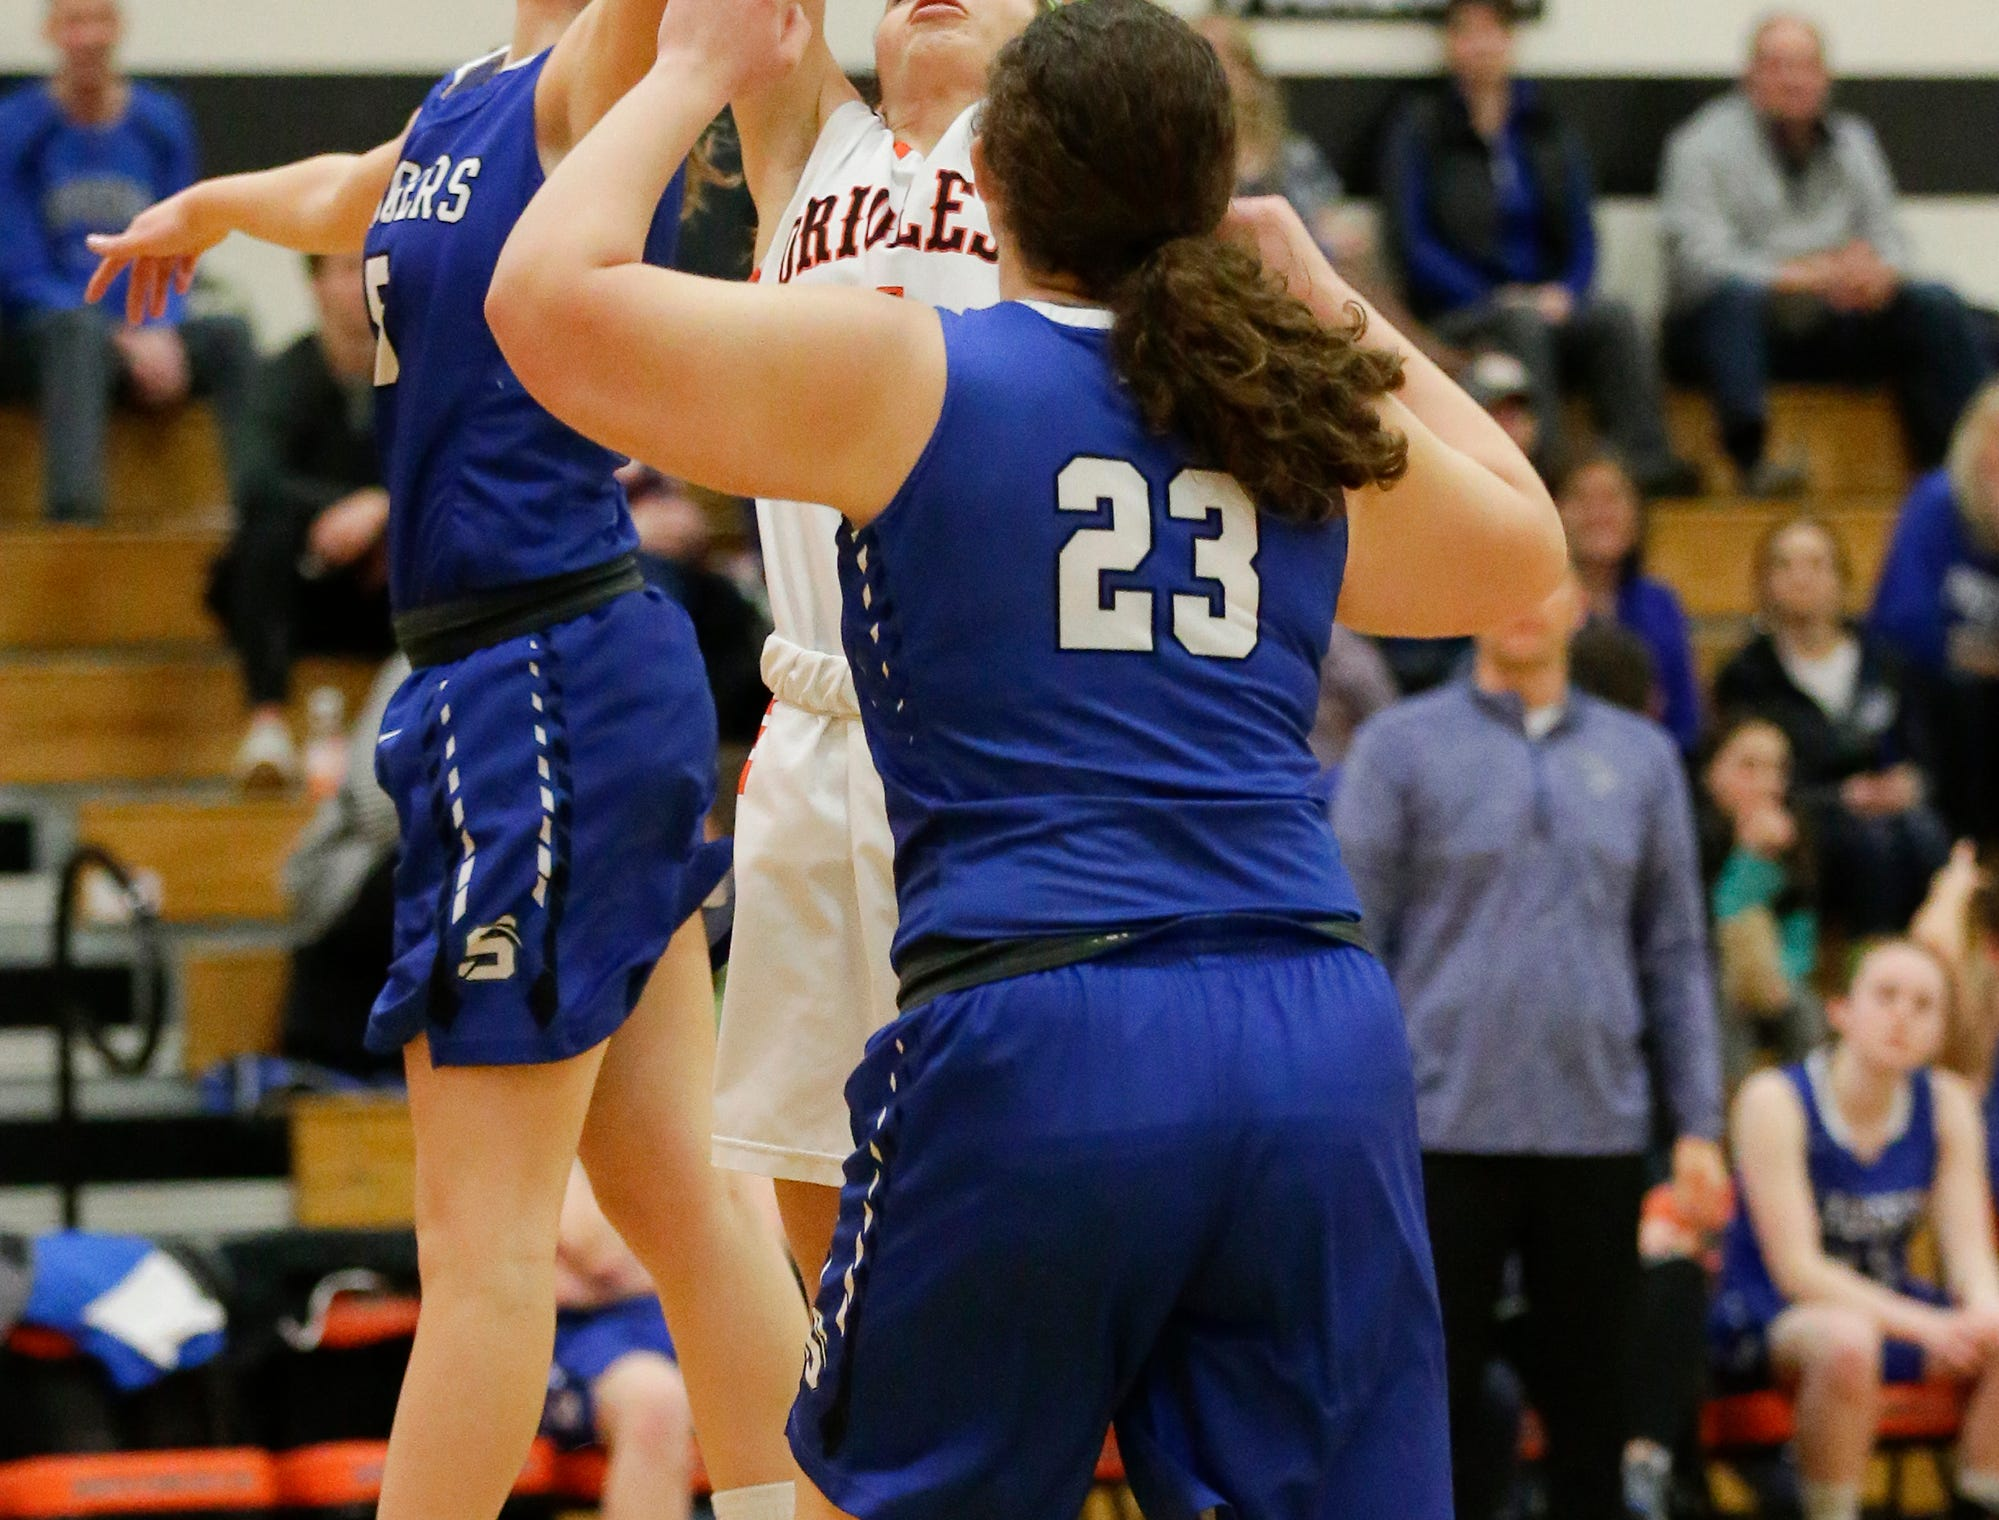 St. Mary's Springs Academy girls basketball's Gracie Rieder (5) attempts to block a shot by North Fond du Lac High School's Shalome Stettbacher during their game Friday, January 4, 2019 in North Fond du lac. Doug Raflik/USA TODAY NETWORK-Wisconsin